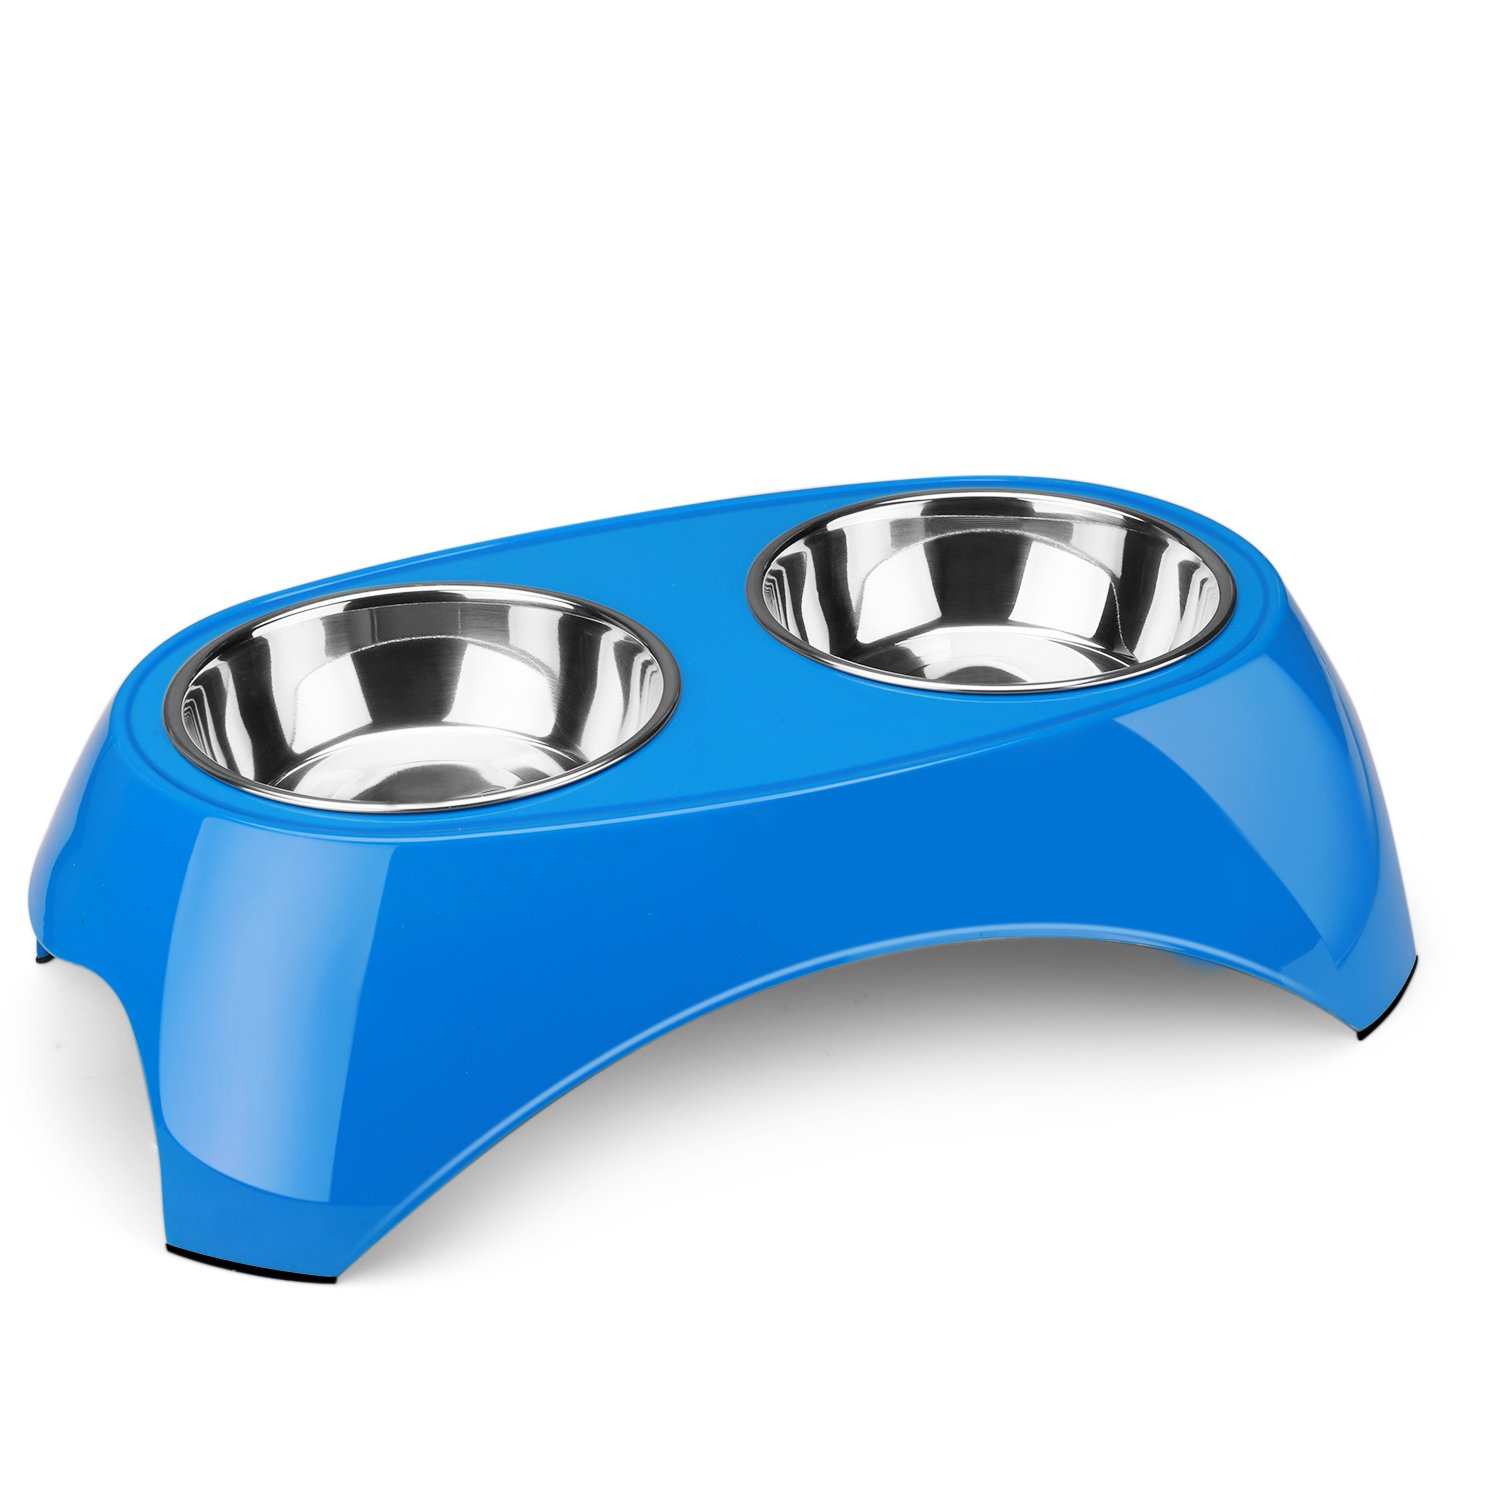 Flexzion Pet Feeder Bowls Double Stainless Steel (Set of 2) - Removable Raised Feeding Station Tray Dog Cat Puppies Animal Food Water Holder Container Dish Table Dinner Set with Elevated Stand (Blue)